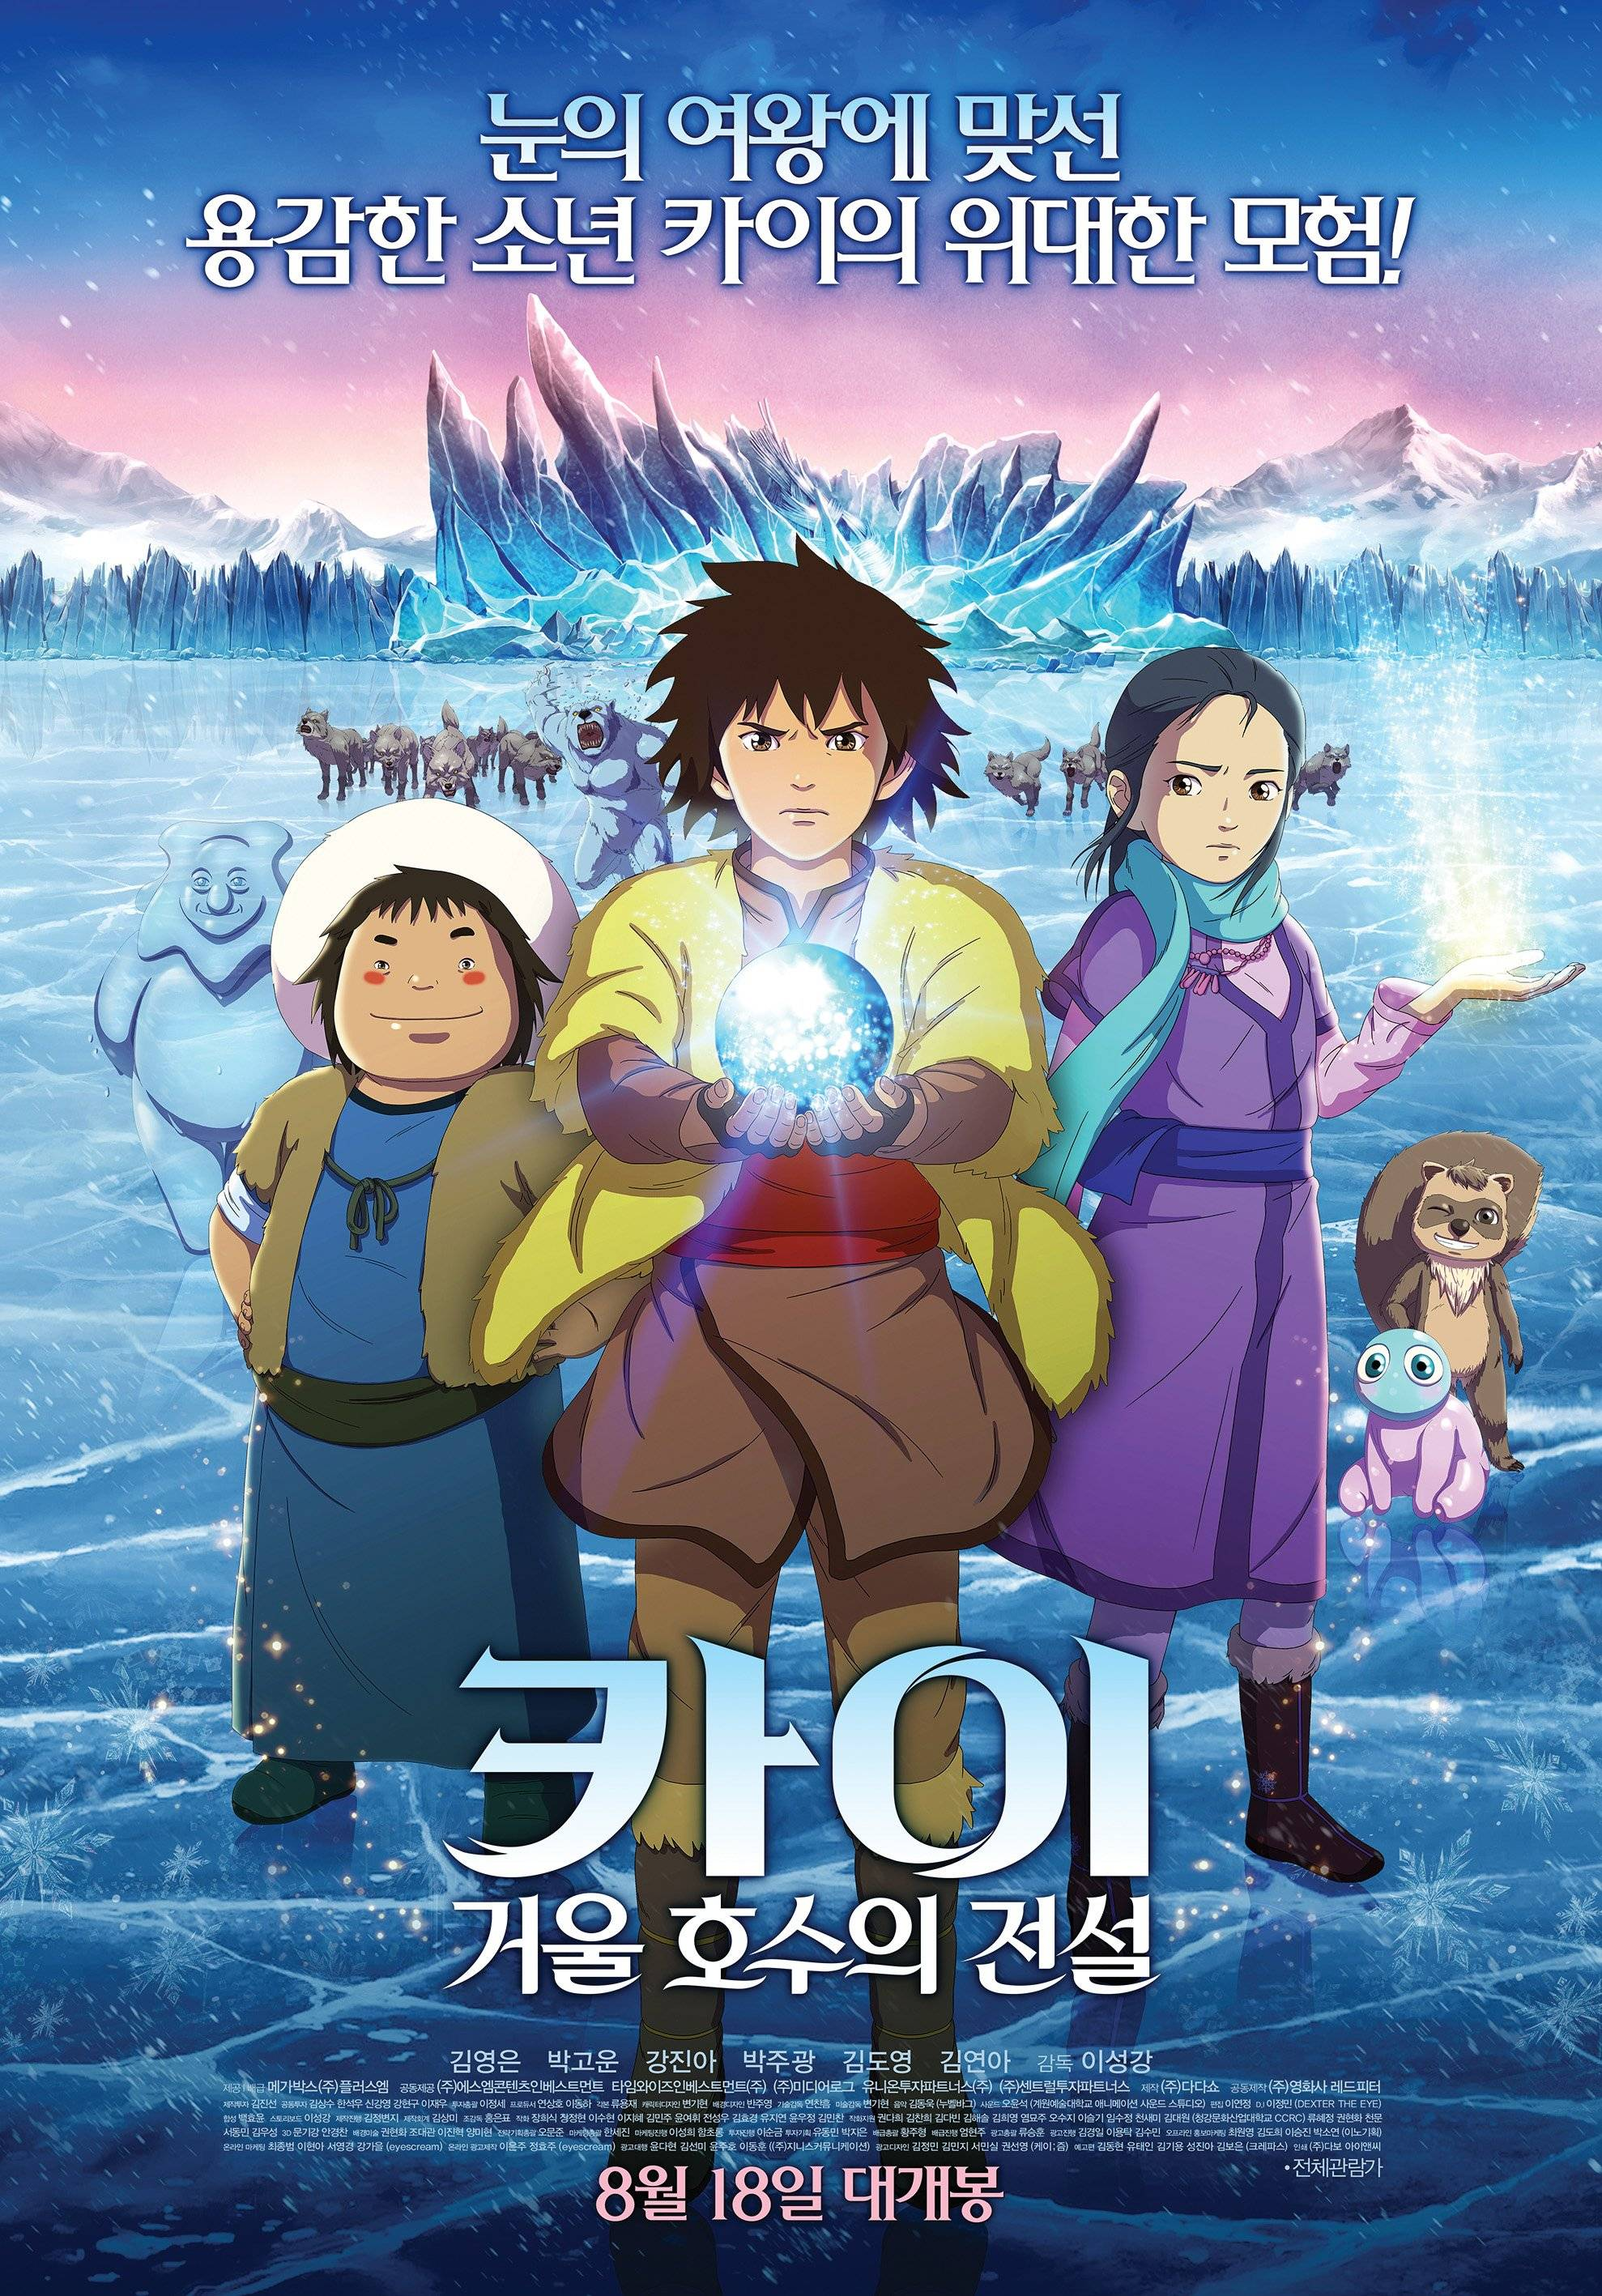 Video main trailer released for the korean animated movie kai animation